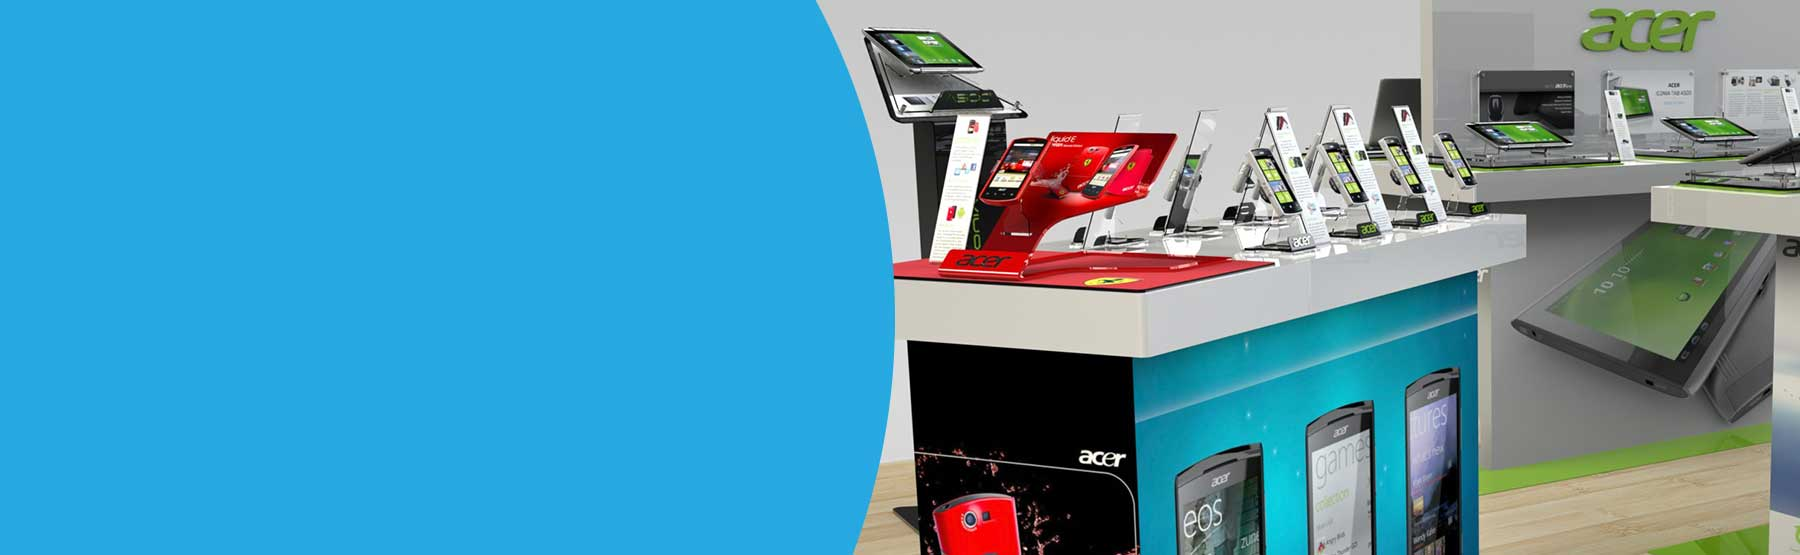 point-of-sale-displays-acer-banner